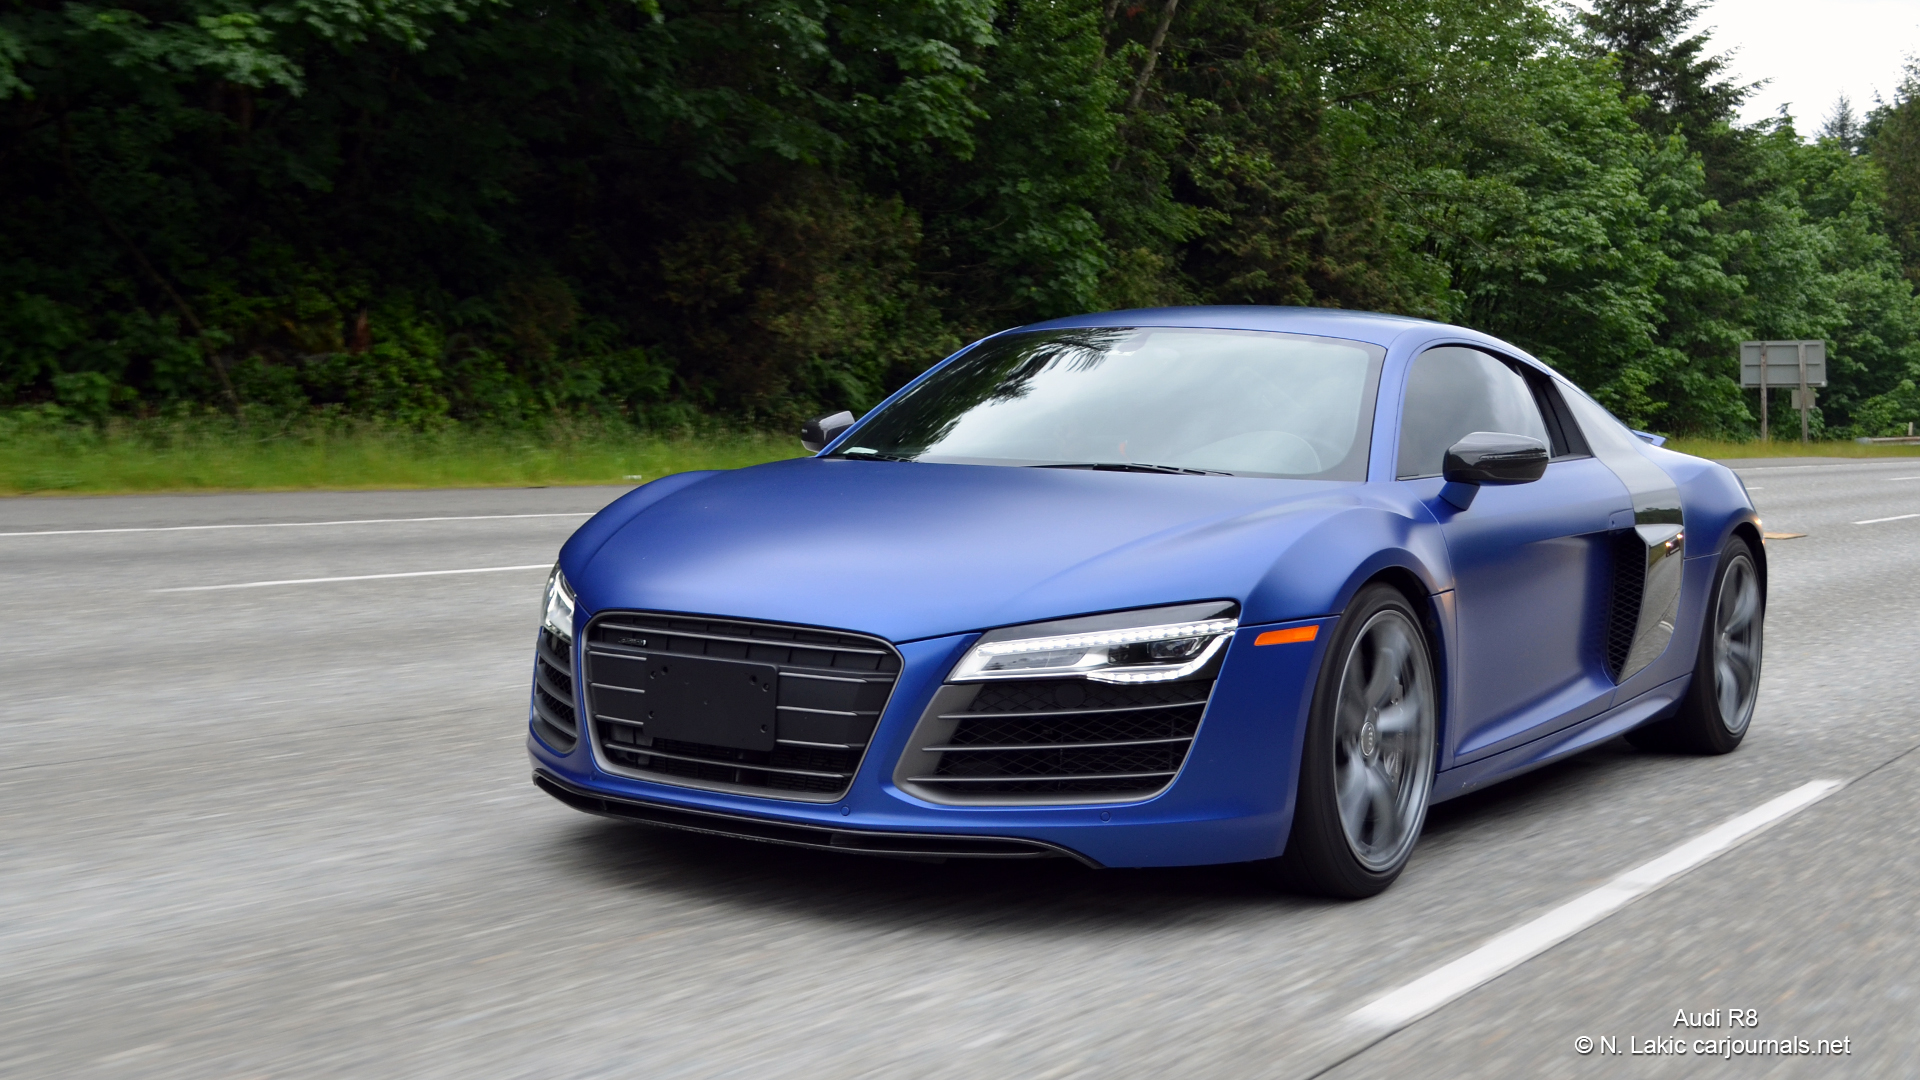 Hd Car Wallpapers Blue Audi R8 Car Journals